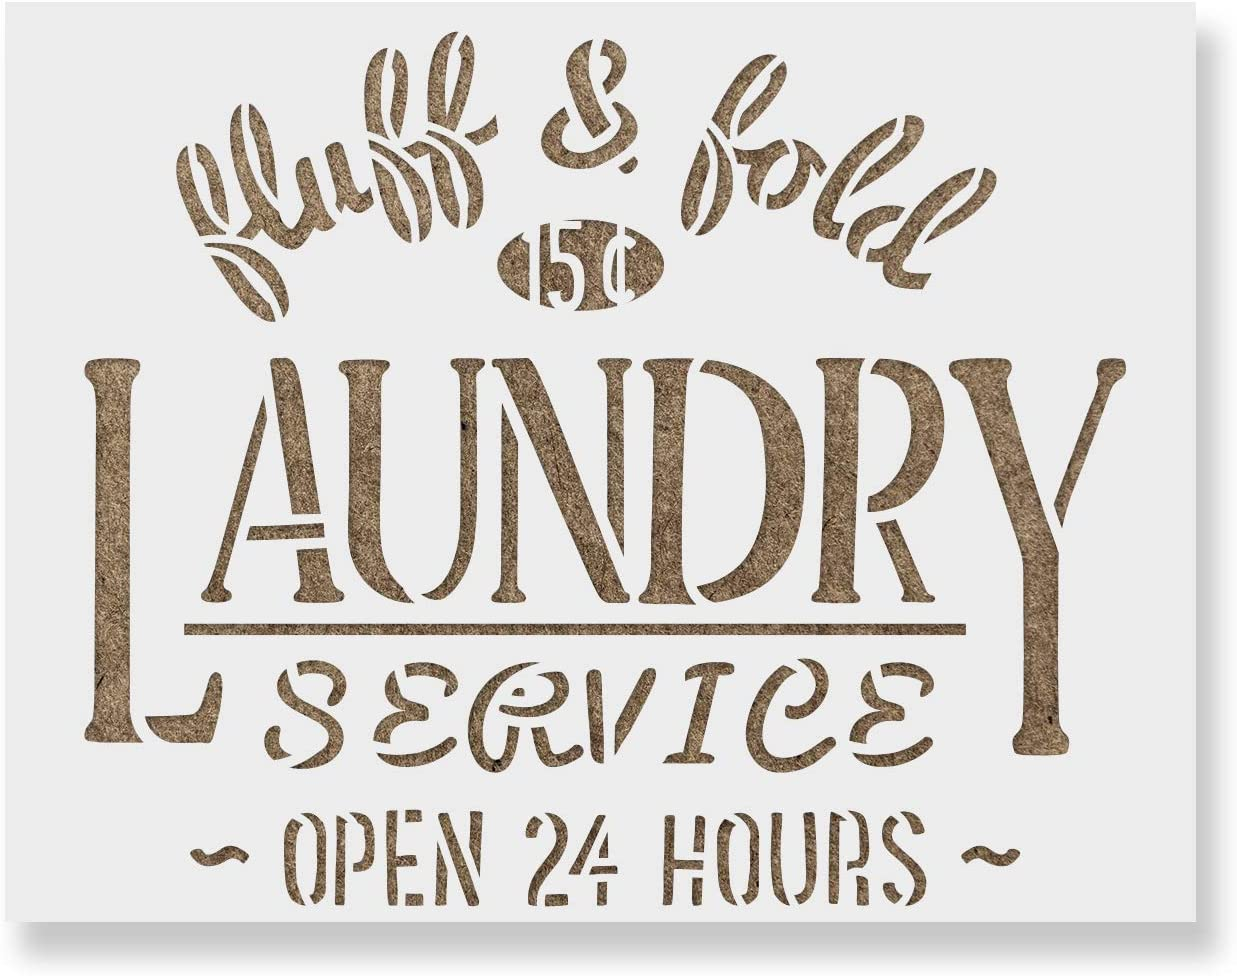 Laundry Service Stencil Template for Walls and Crafts - Reusable Stencils for Painting in Small & Large Sizes